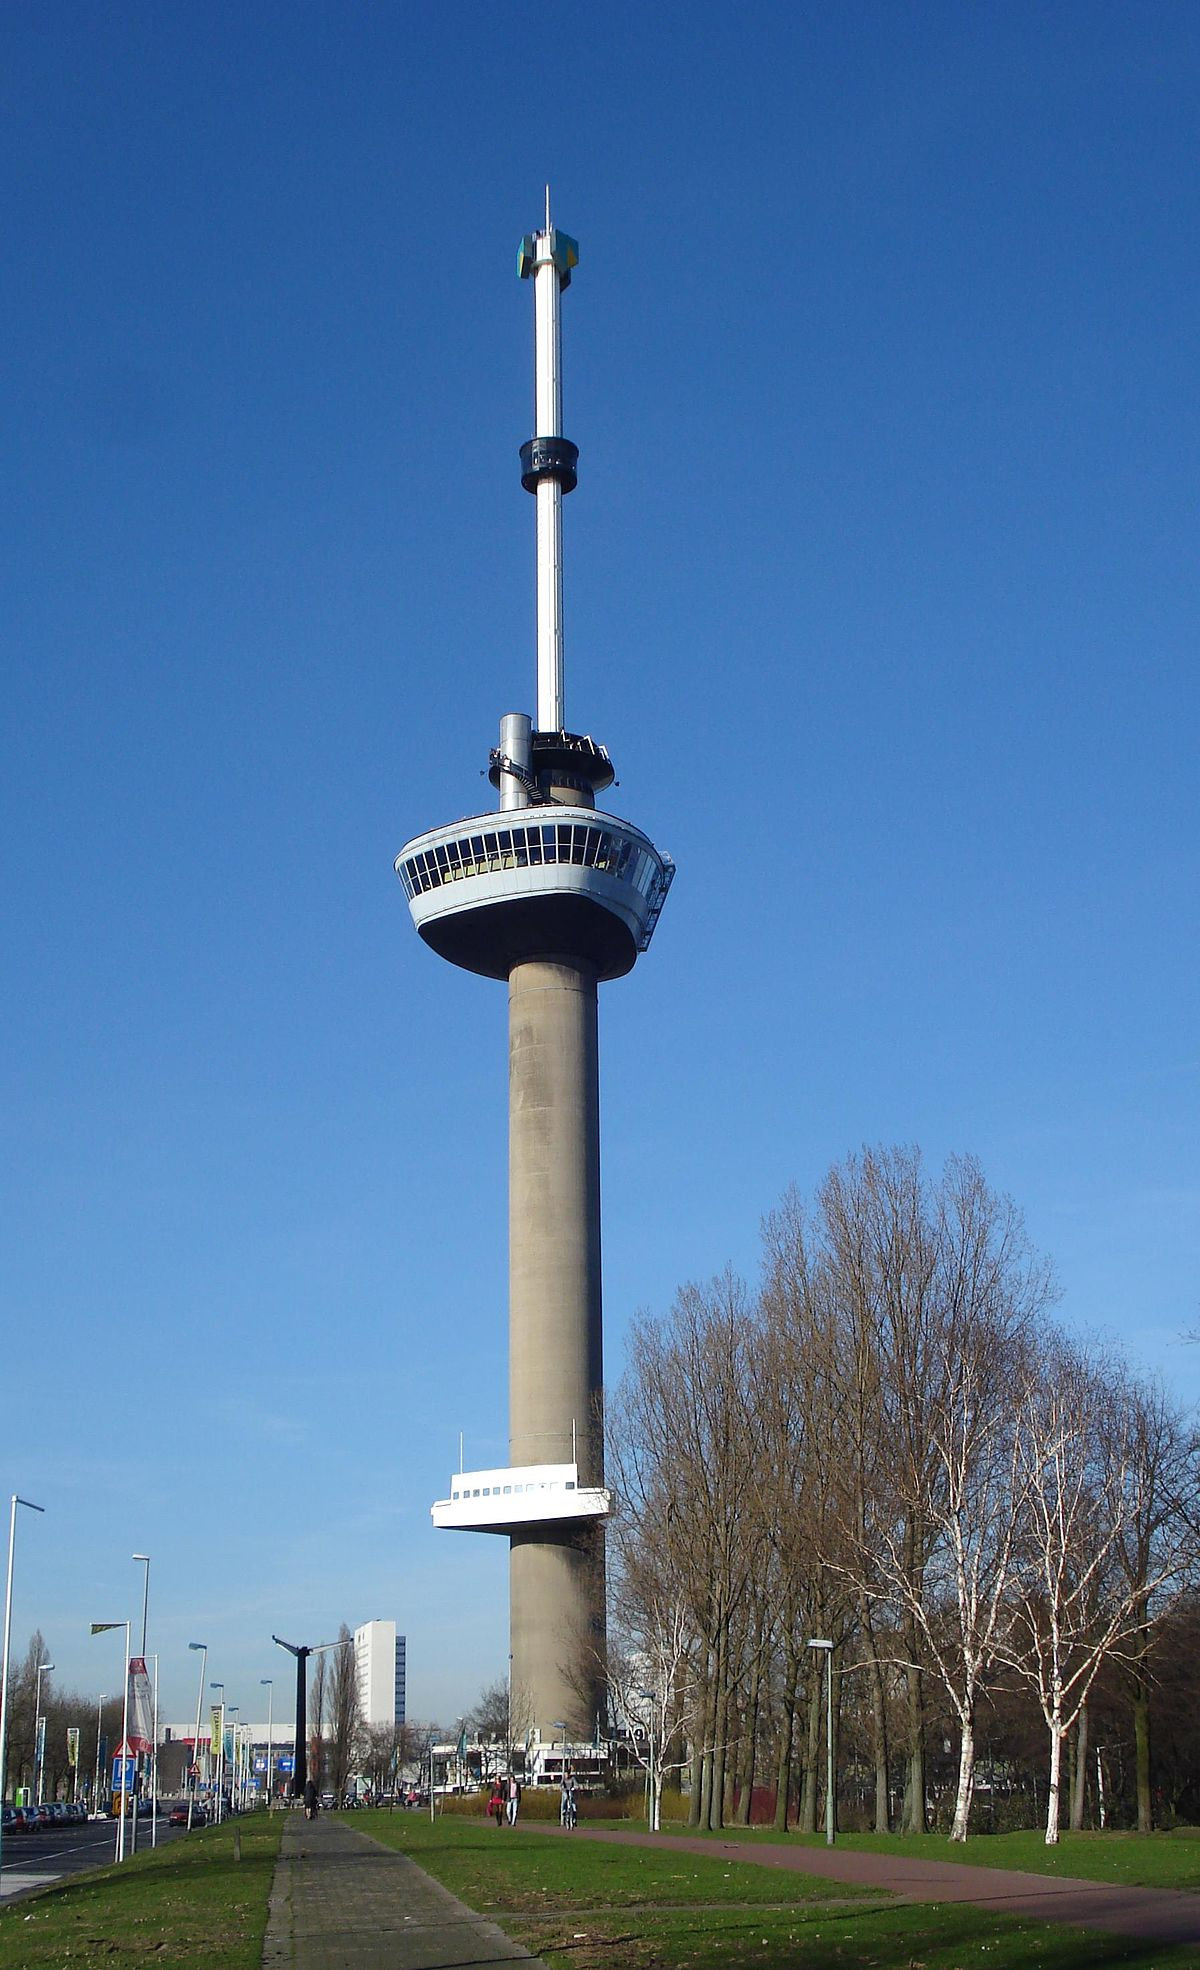 Euromast wikipedia - Afbeelding in ...